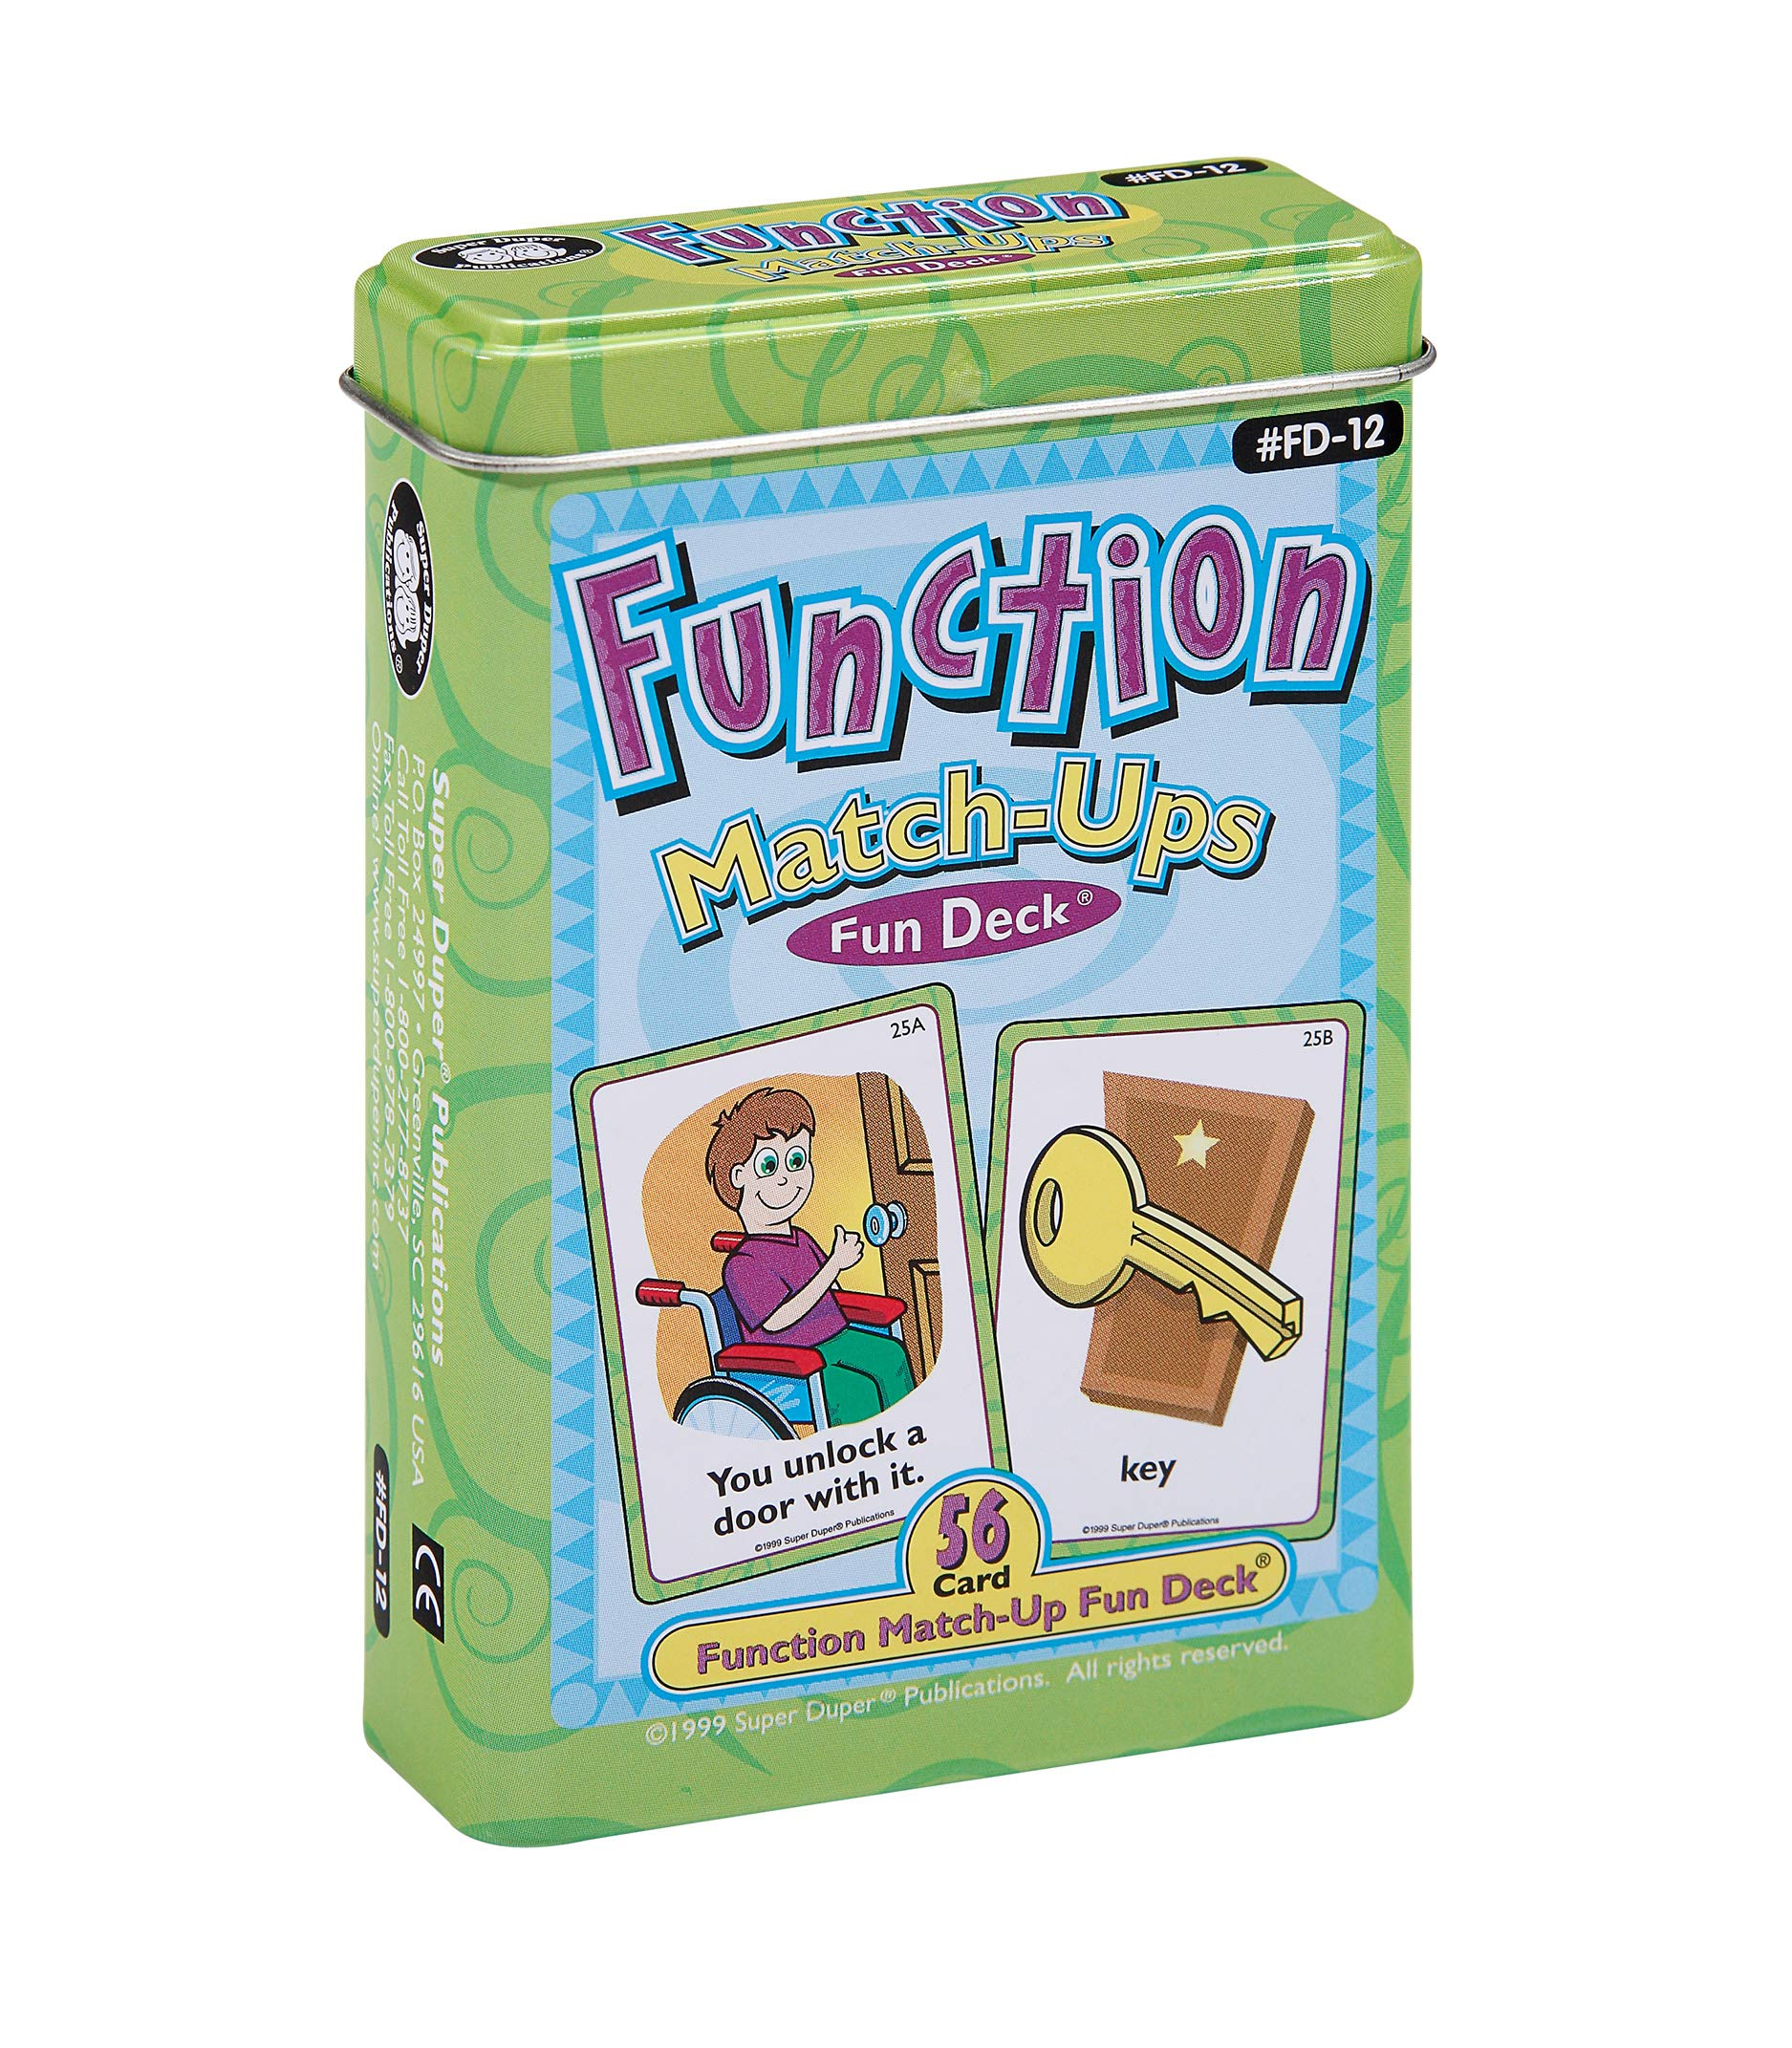 Super Duper Publications | Function Match-Ups Flash Cards | Identify and Describe Everyday Objects Fun Deck | Educational Learning Materials for Children